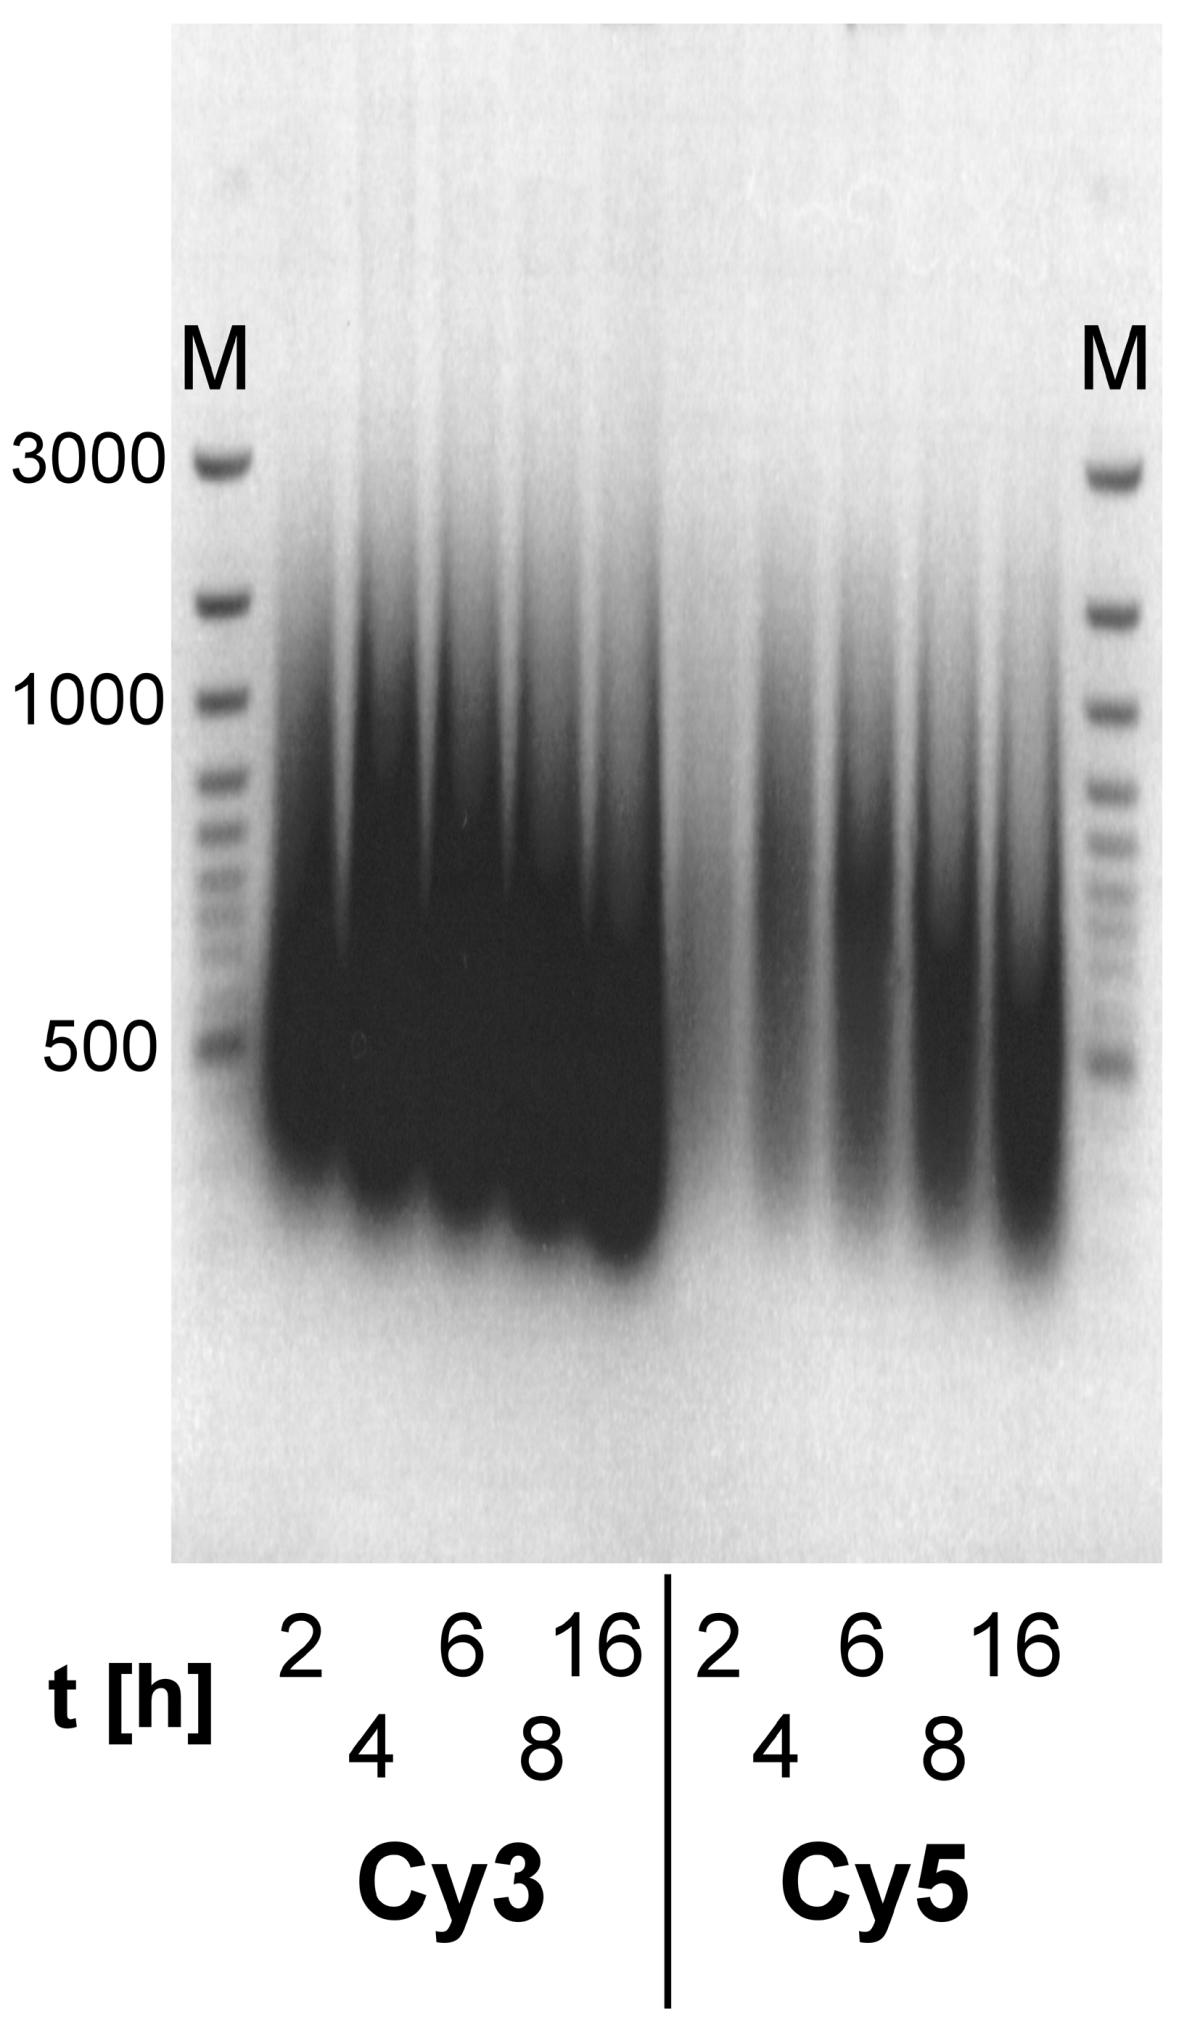 https://static-content.springer.com/image/art%3A10.1186%2F1471-2164-4-44/MediaObjects/12864_2003_Article_93_Fig1_HTML.jpg